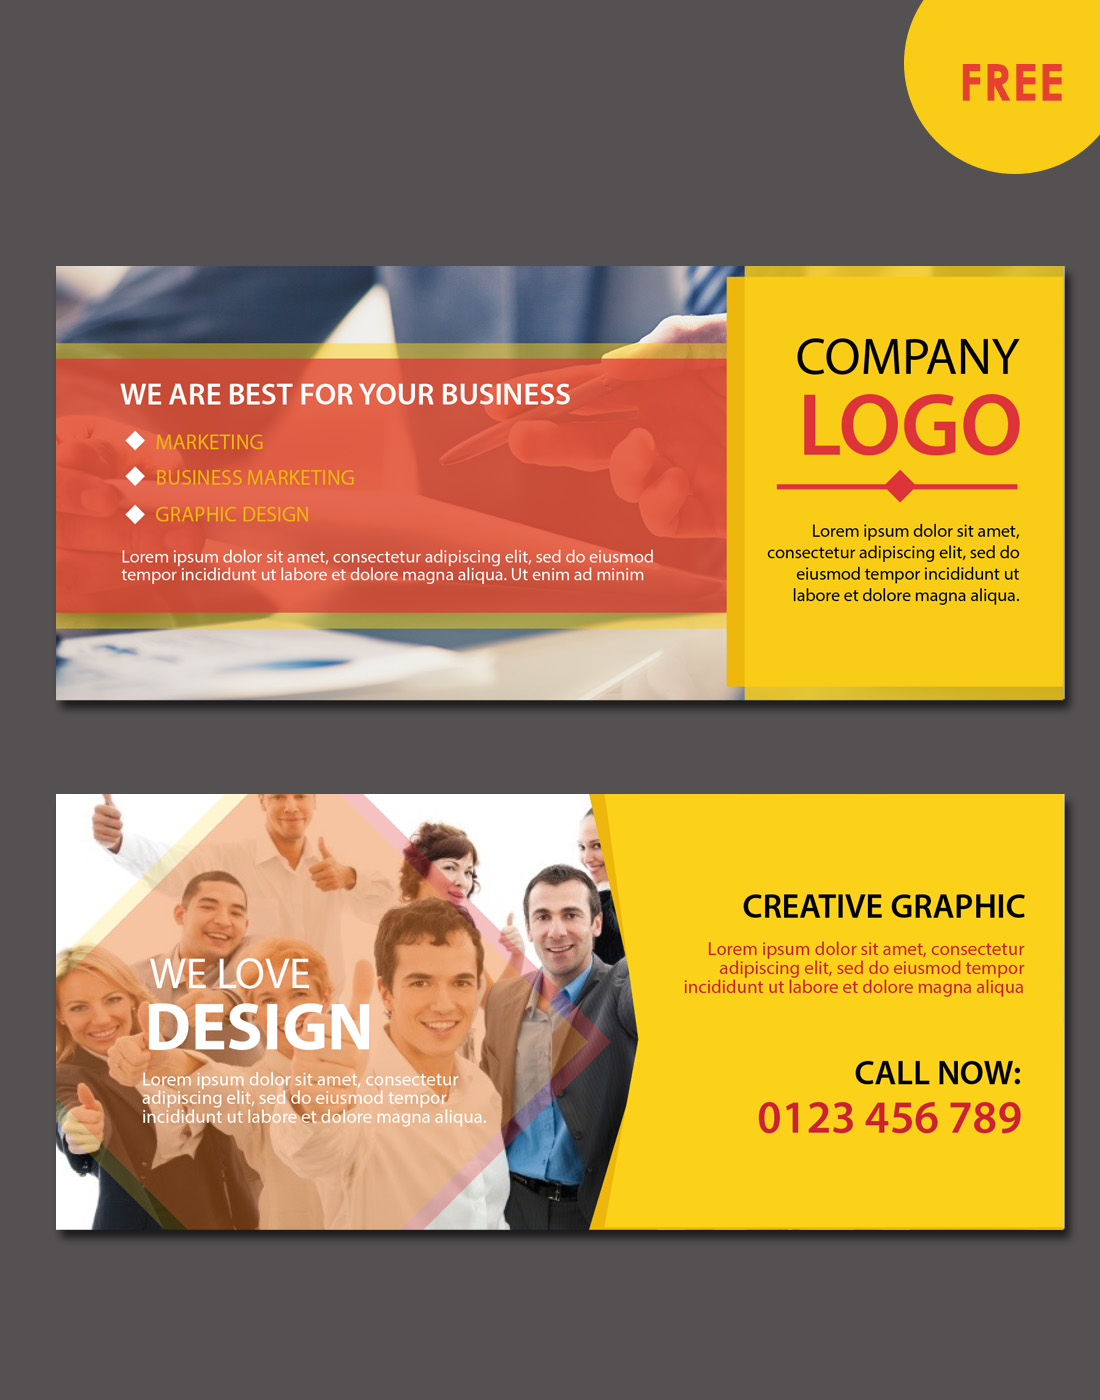 MODERN BUSINESS WEBSITE BANNERS